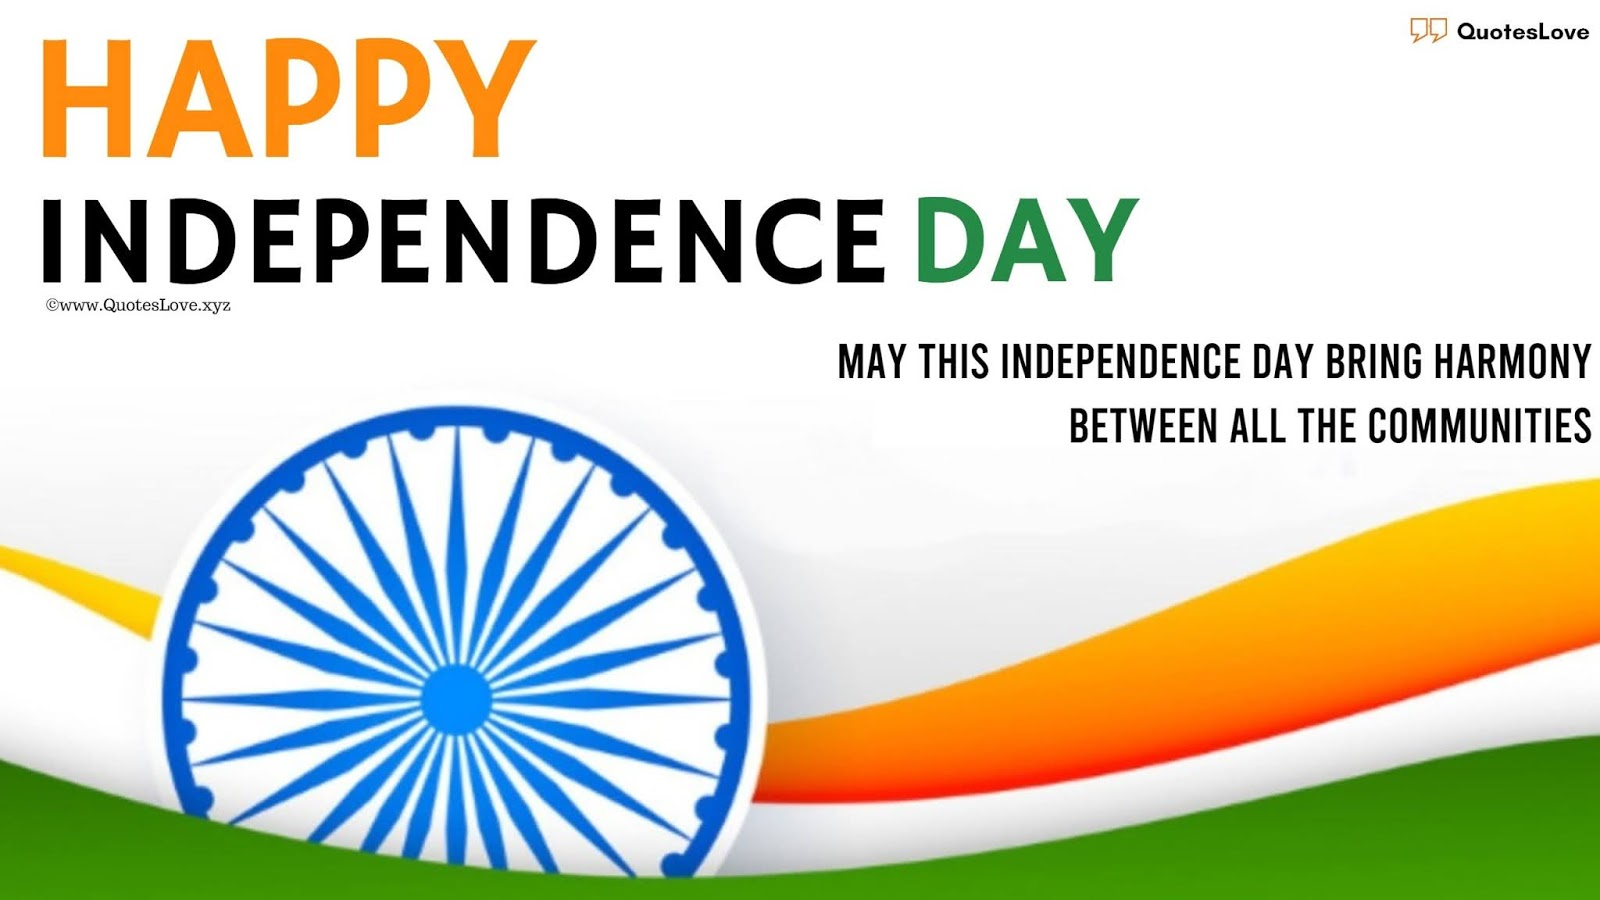 15 August Happy Independence Day Wishes Quotes Messages Images Pictures Poster Wallpaper